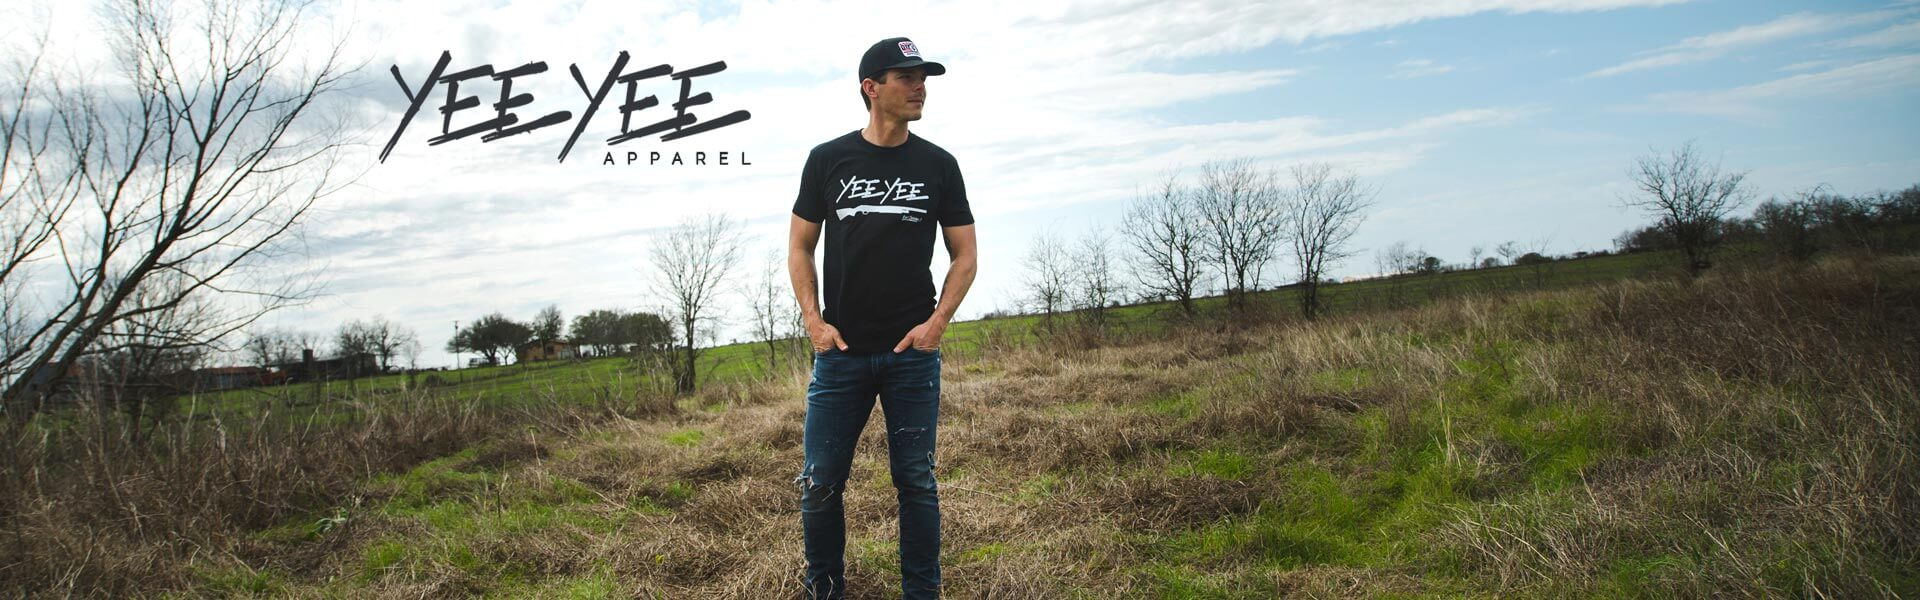 Yee Yee Apparel